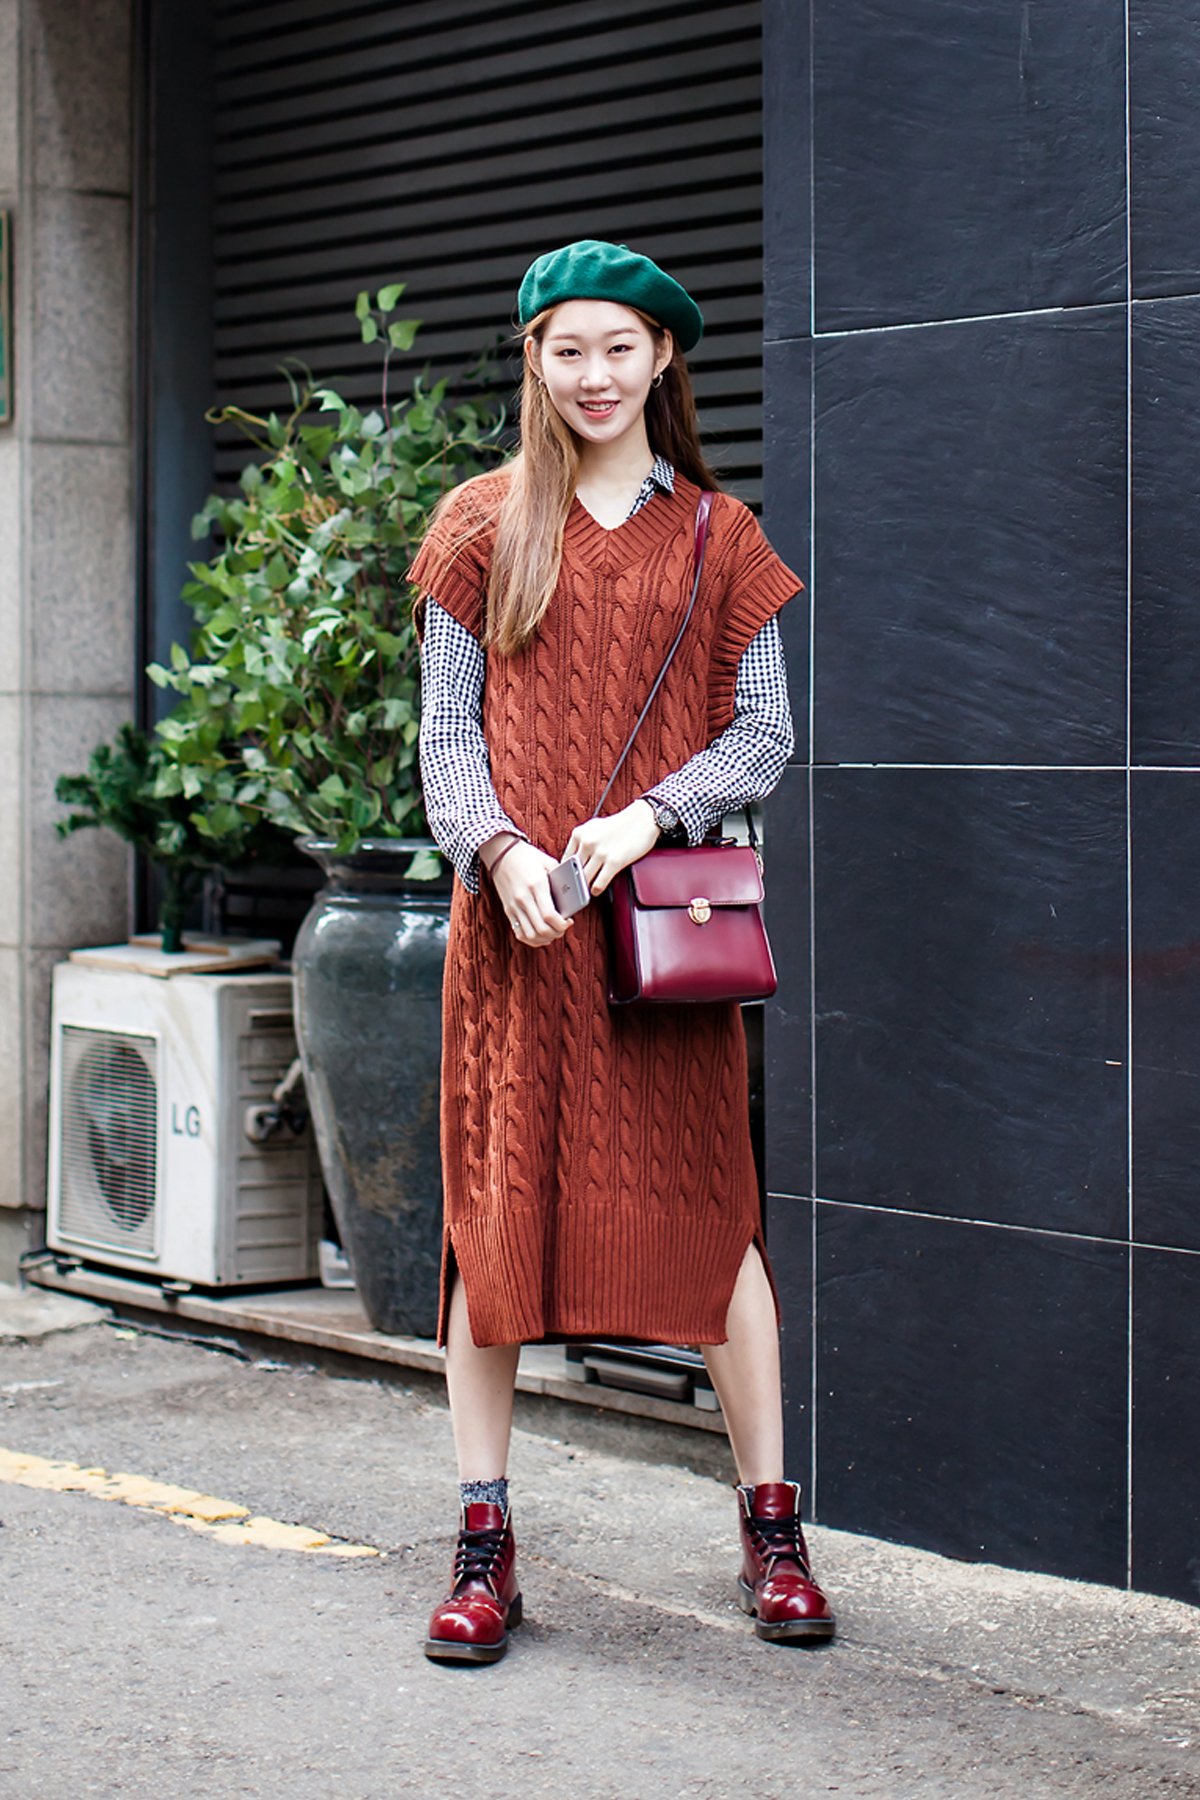 On the street… Jang Yeseung Seoul